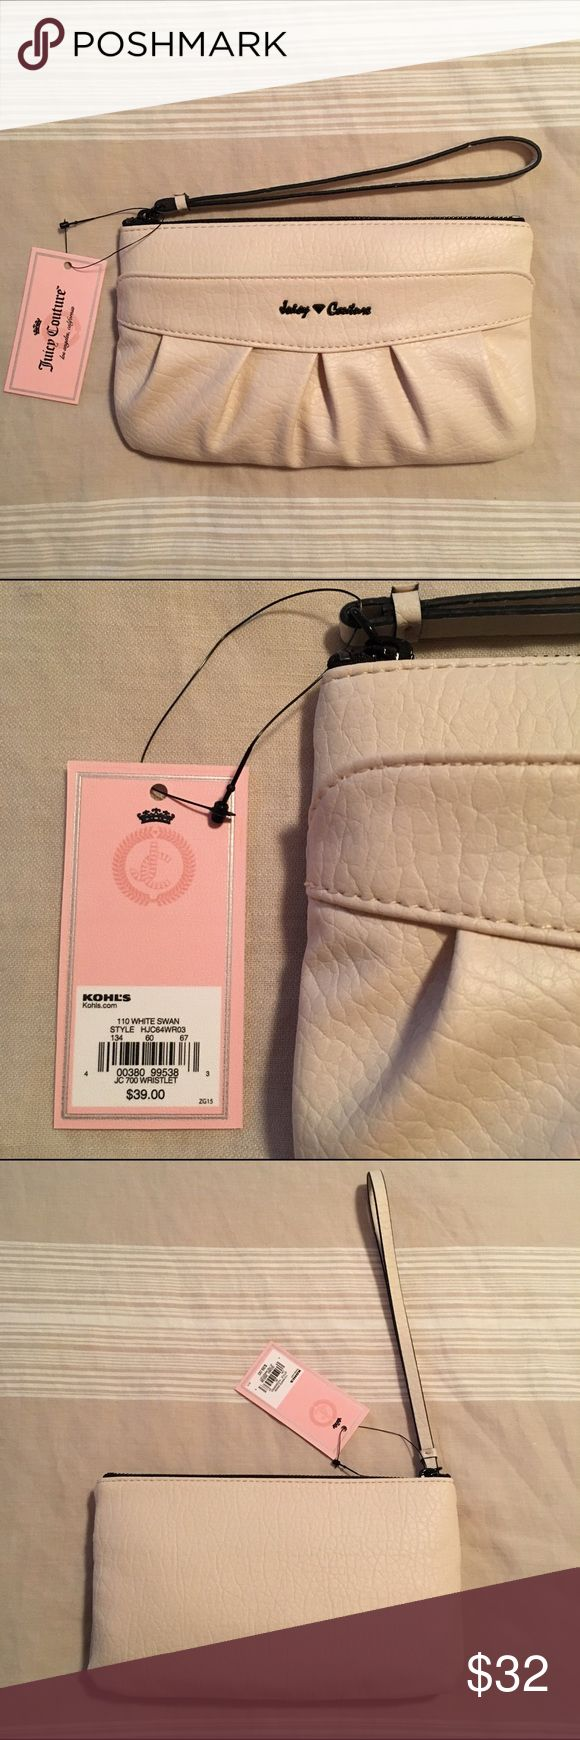 NEW Juicy Couture Ruched Wristlet Brand new with tag! Juicy Couture JC 700 ruched wristlet. The color on the tag says 'White Swan', but it is more of an off white cream color. So pretty! It will match any outfit!! Pretty ruched design. Measures 5 1/4''H x 8 3/4''W x 1''D. Zipper closure. Drop down length: 7 1/2''. Wristlet strap. Exterior zip pocket and interior has 2 slip pockets, zip pocket & 6 card slots. Faux leather. If you have any questions let me know :) I don't trade at this time…